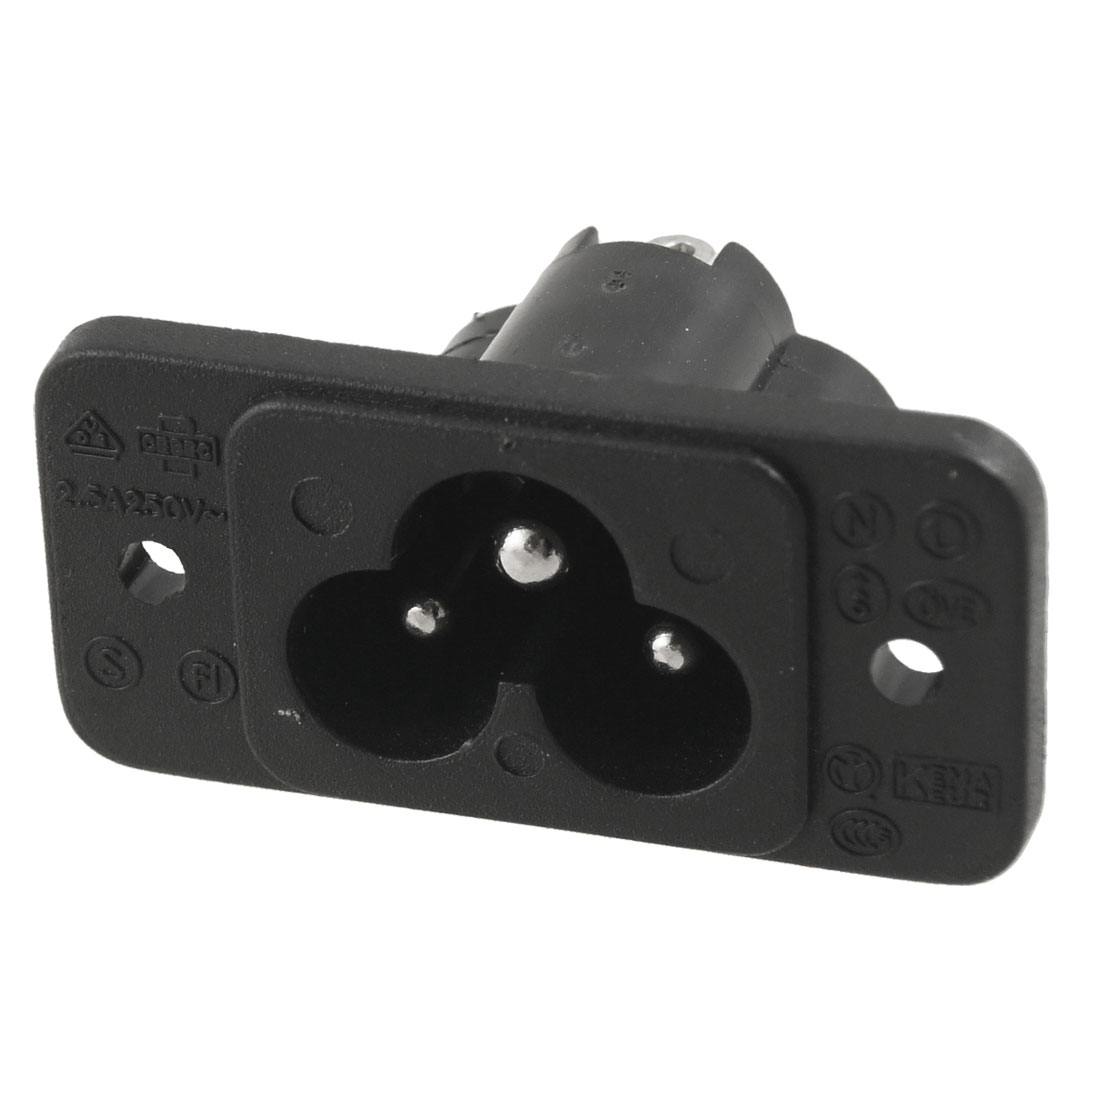 Black 3 Terminal IEC320 C6 Inlet Connector Power Socket AC 250V 2.5A